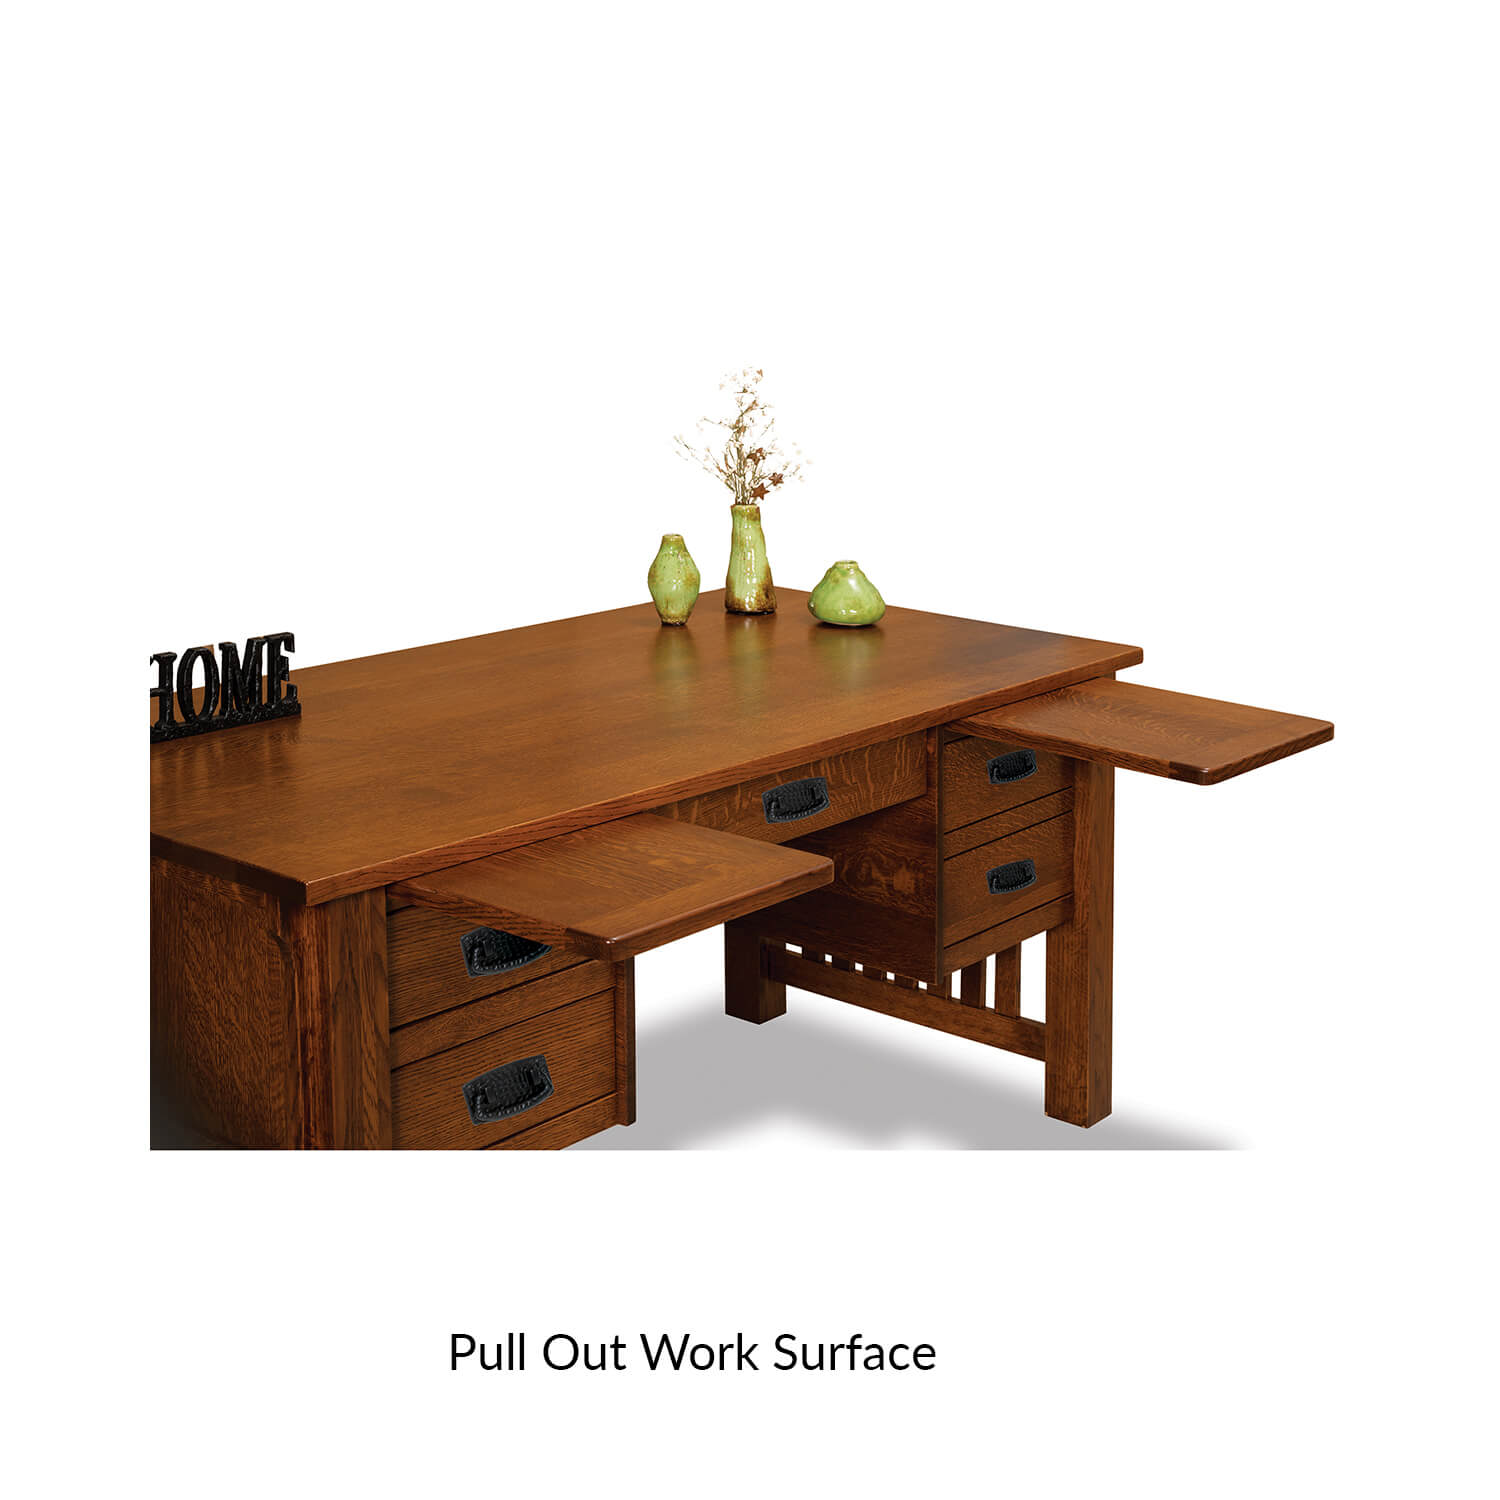 8.-pull-out-work-surface.jpg